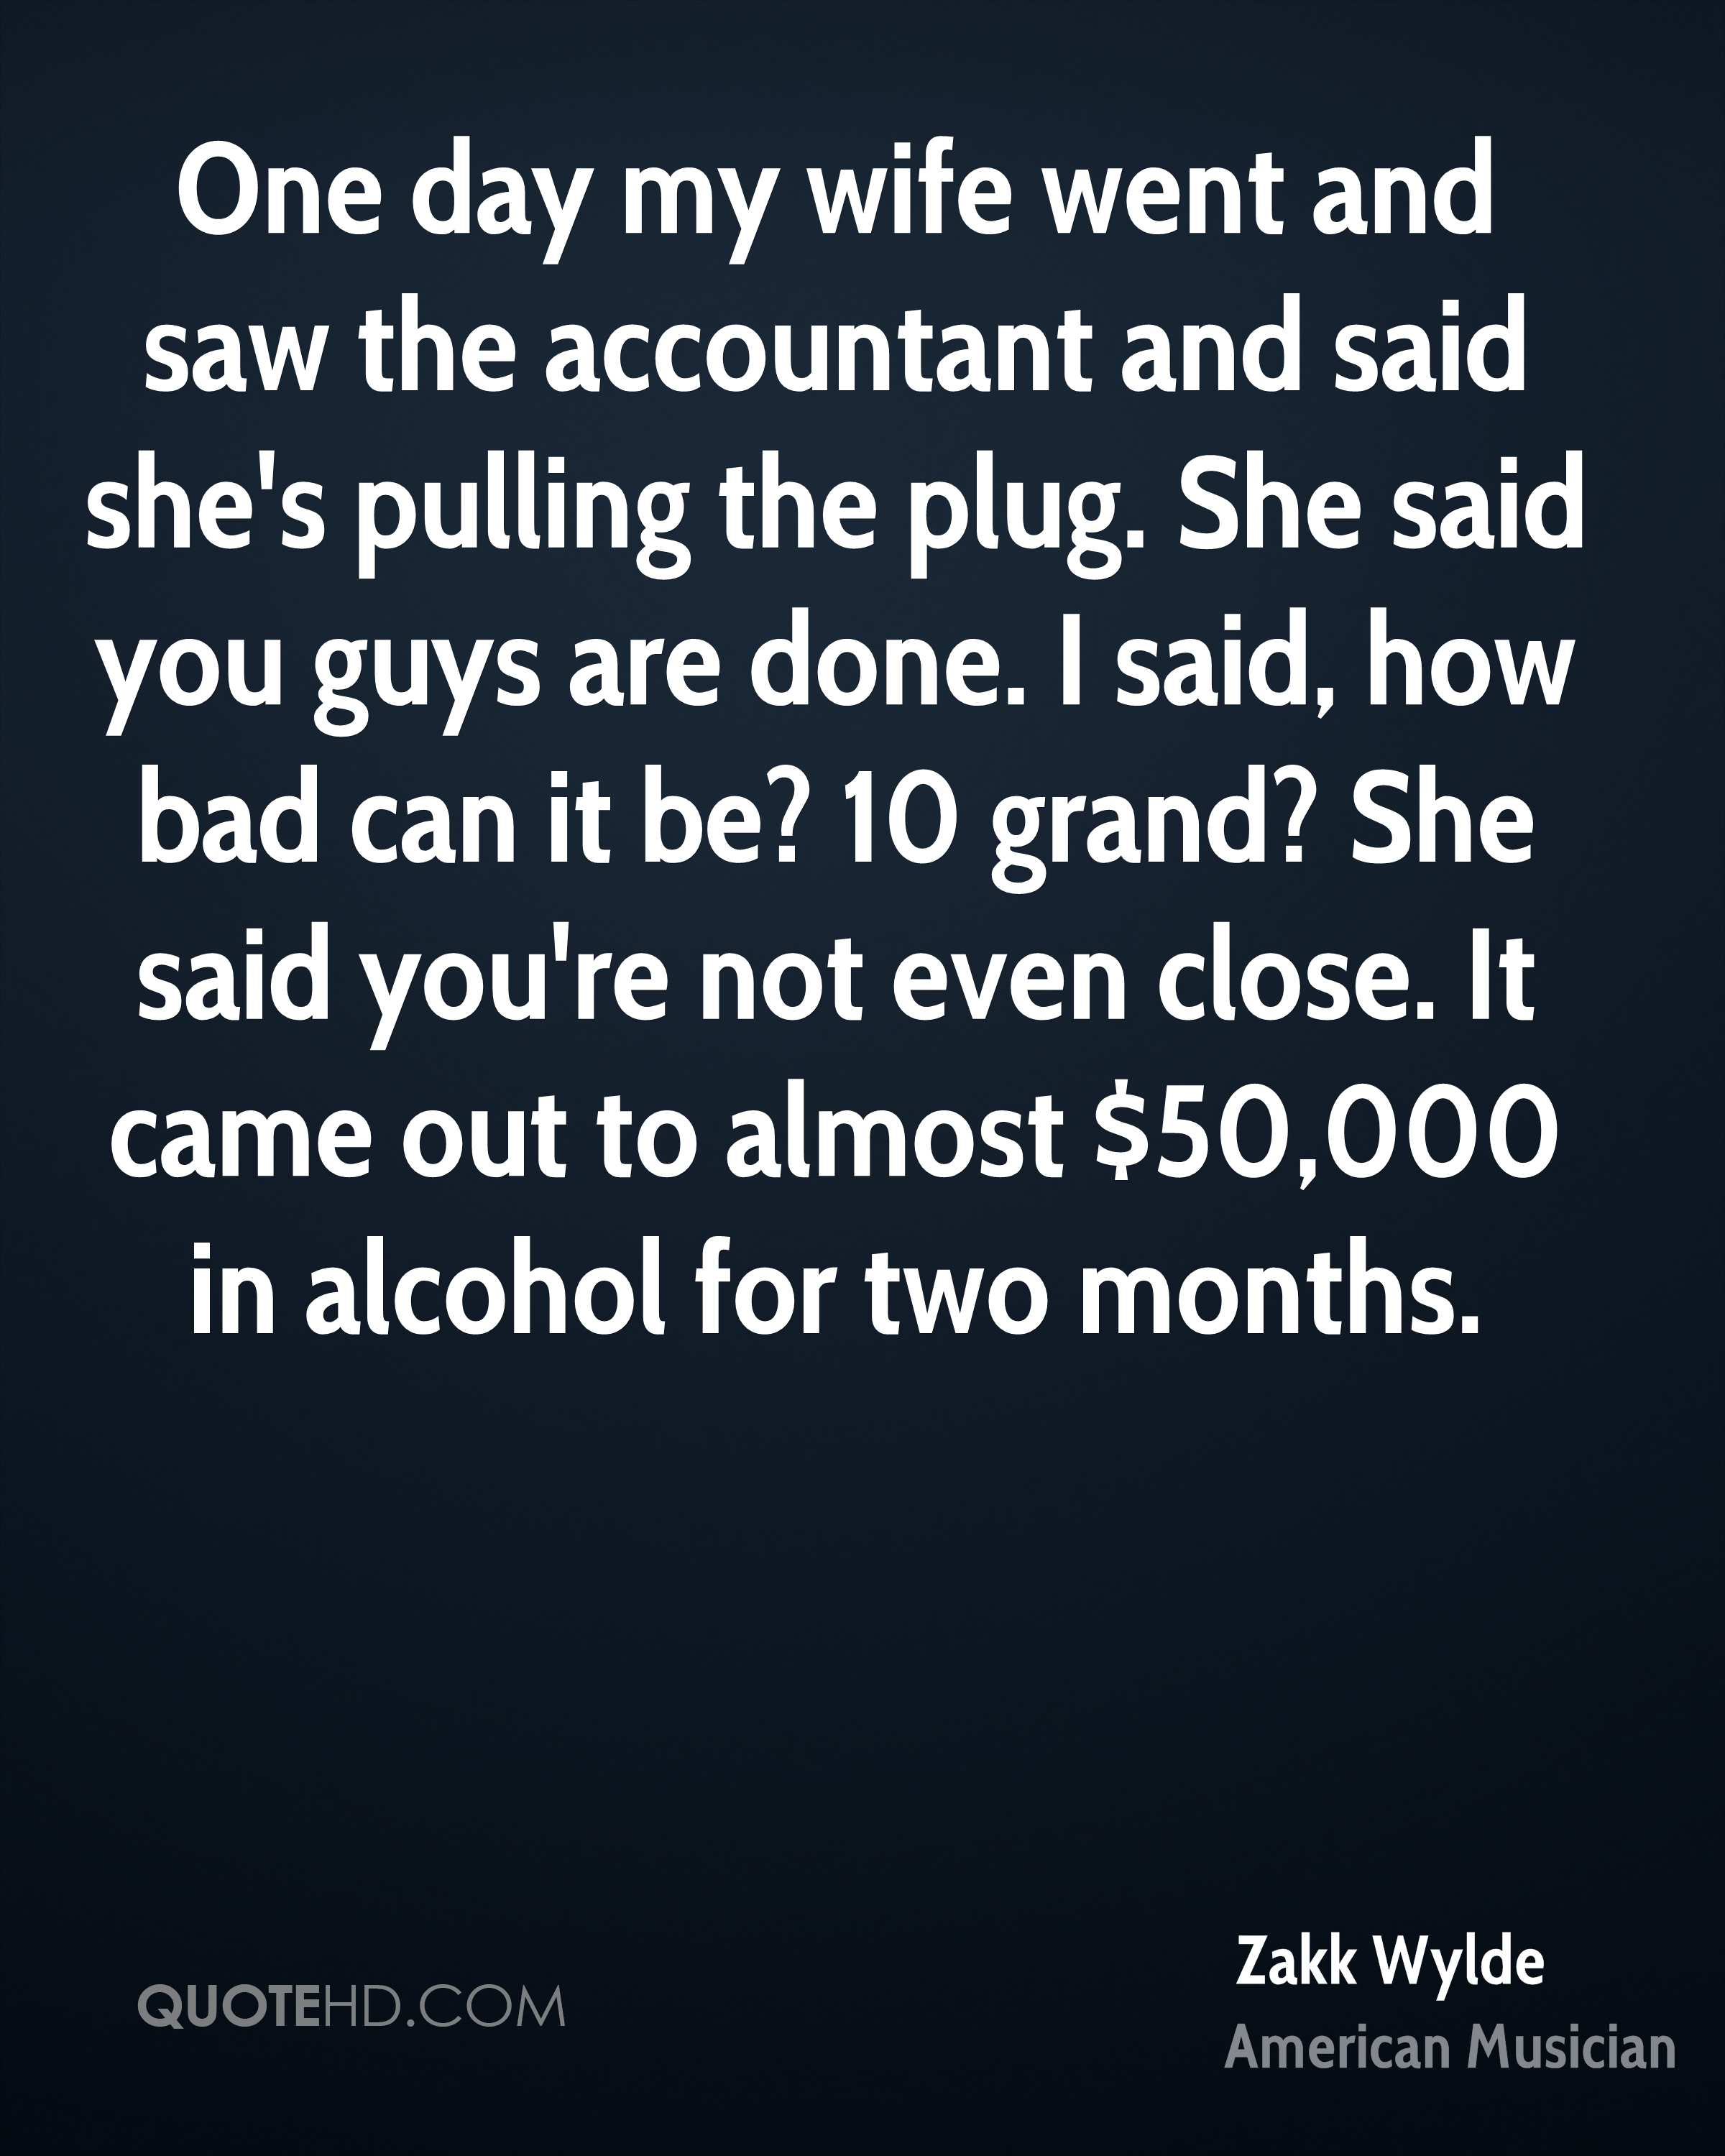 One day my wife went and saw the accountant and said she's pulling the plug. She said you guys are done. I said, how bad can it be? 10 grand? She said you're not even close. It came out to almost $50,000 in alcohol for two months.